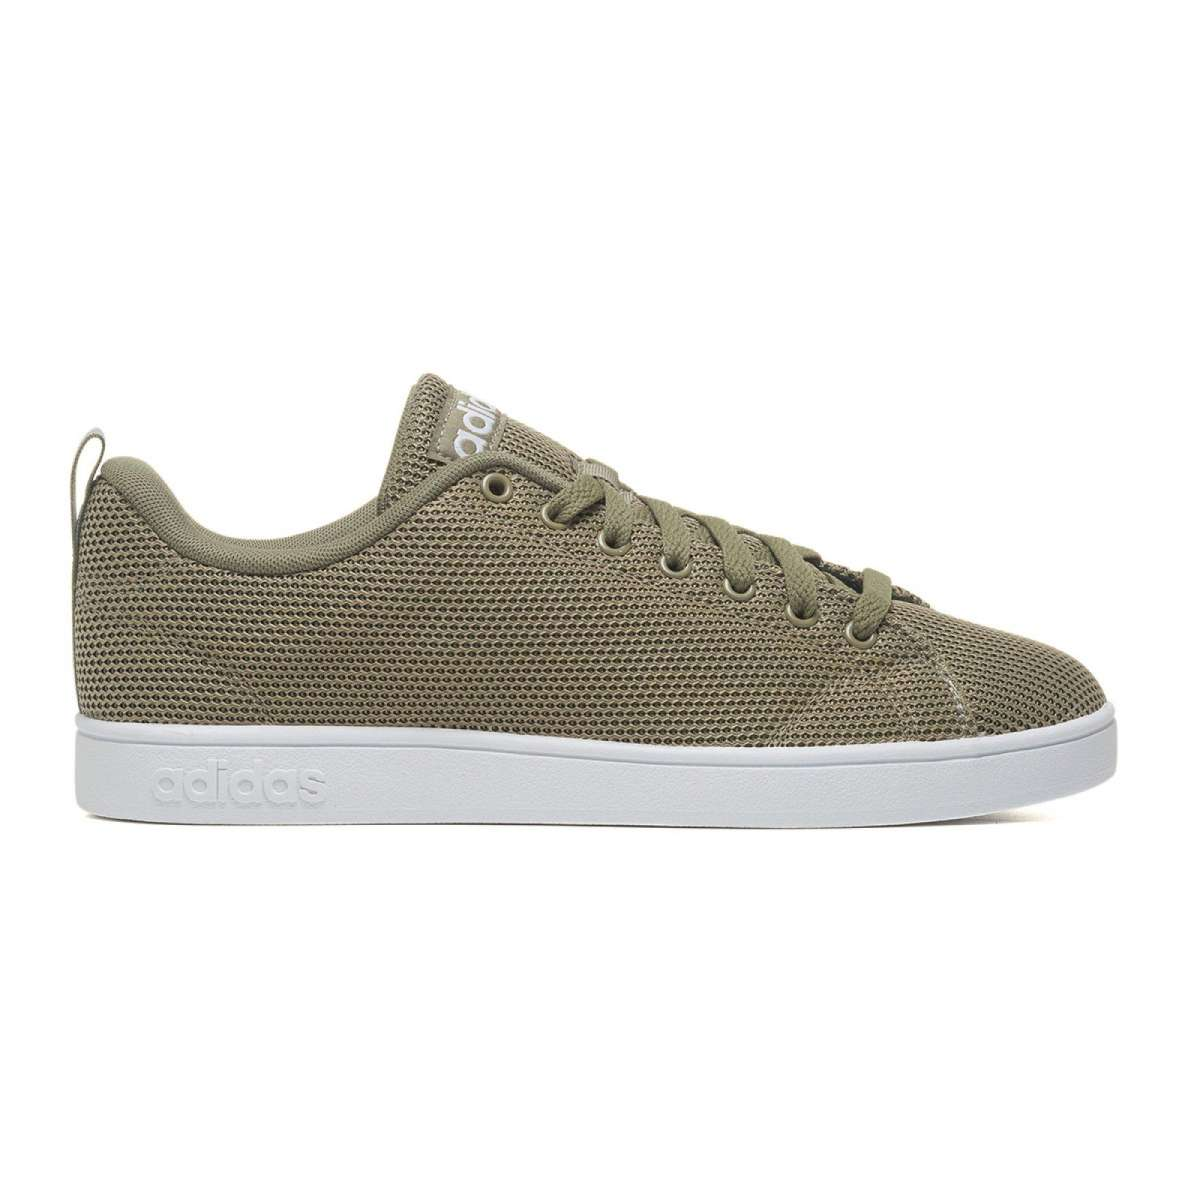 Adidas Army Green VS Advantage CL Casual Shoes For Men F34436